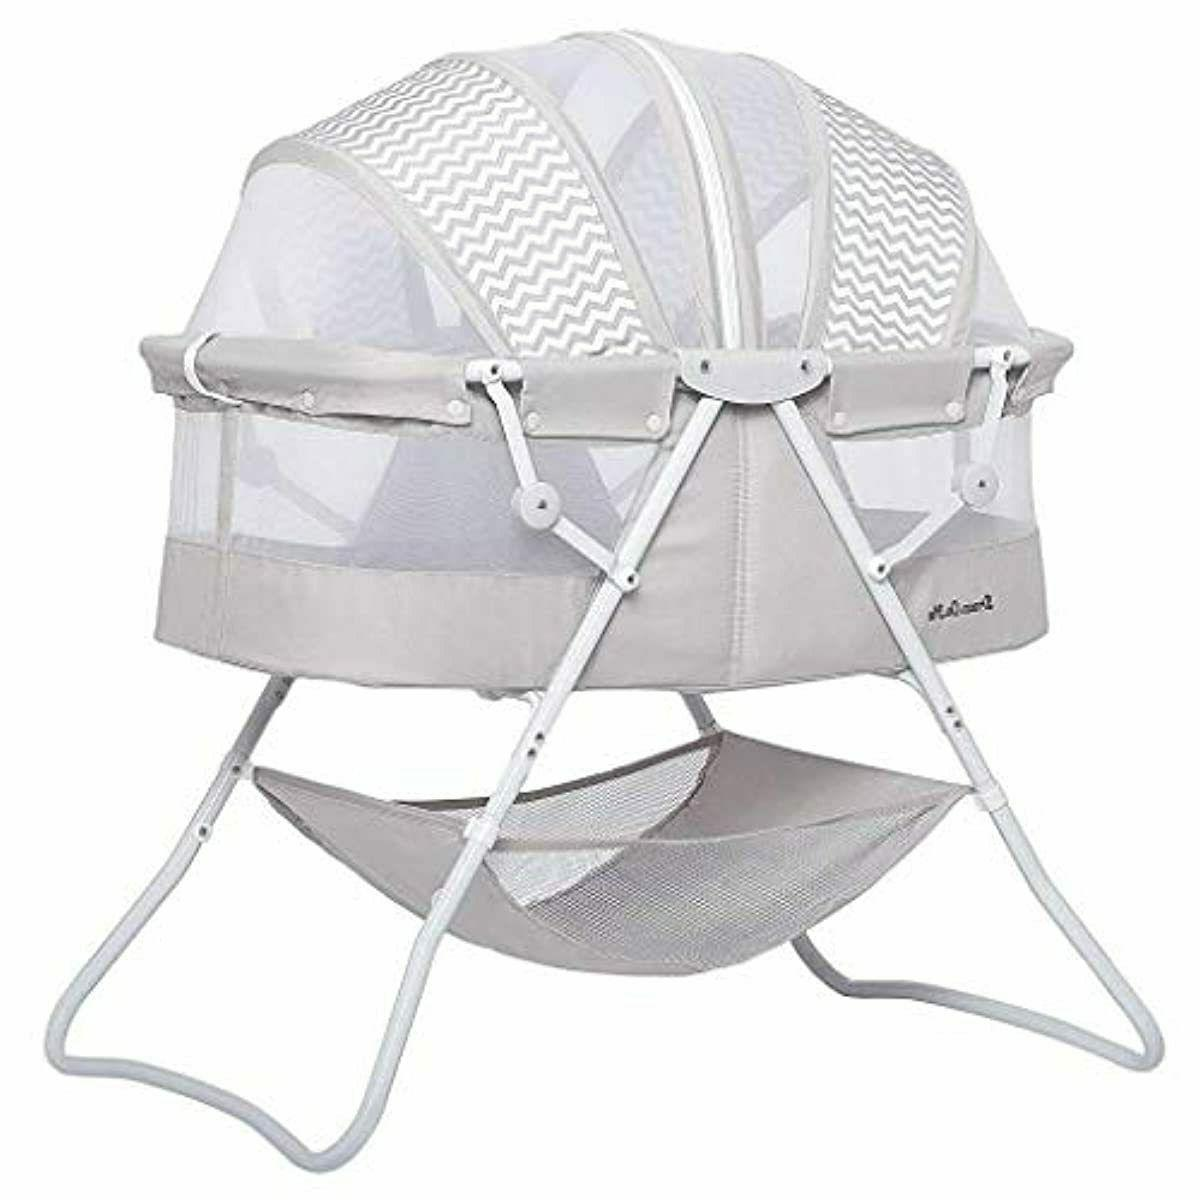 Dream On Bassinet,